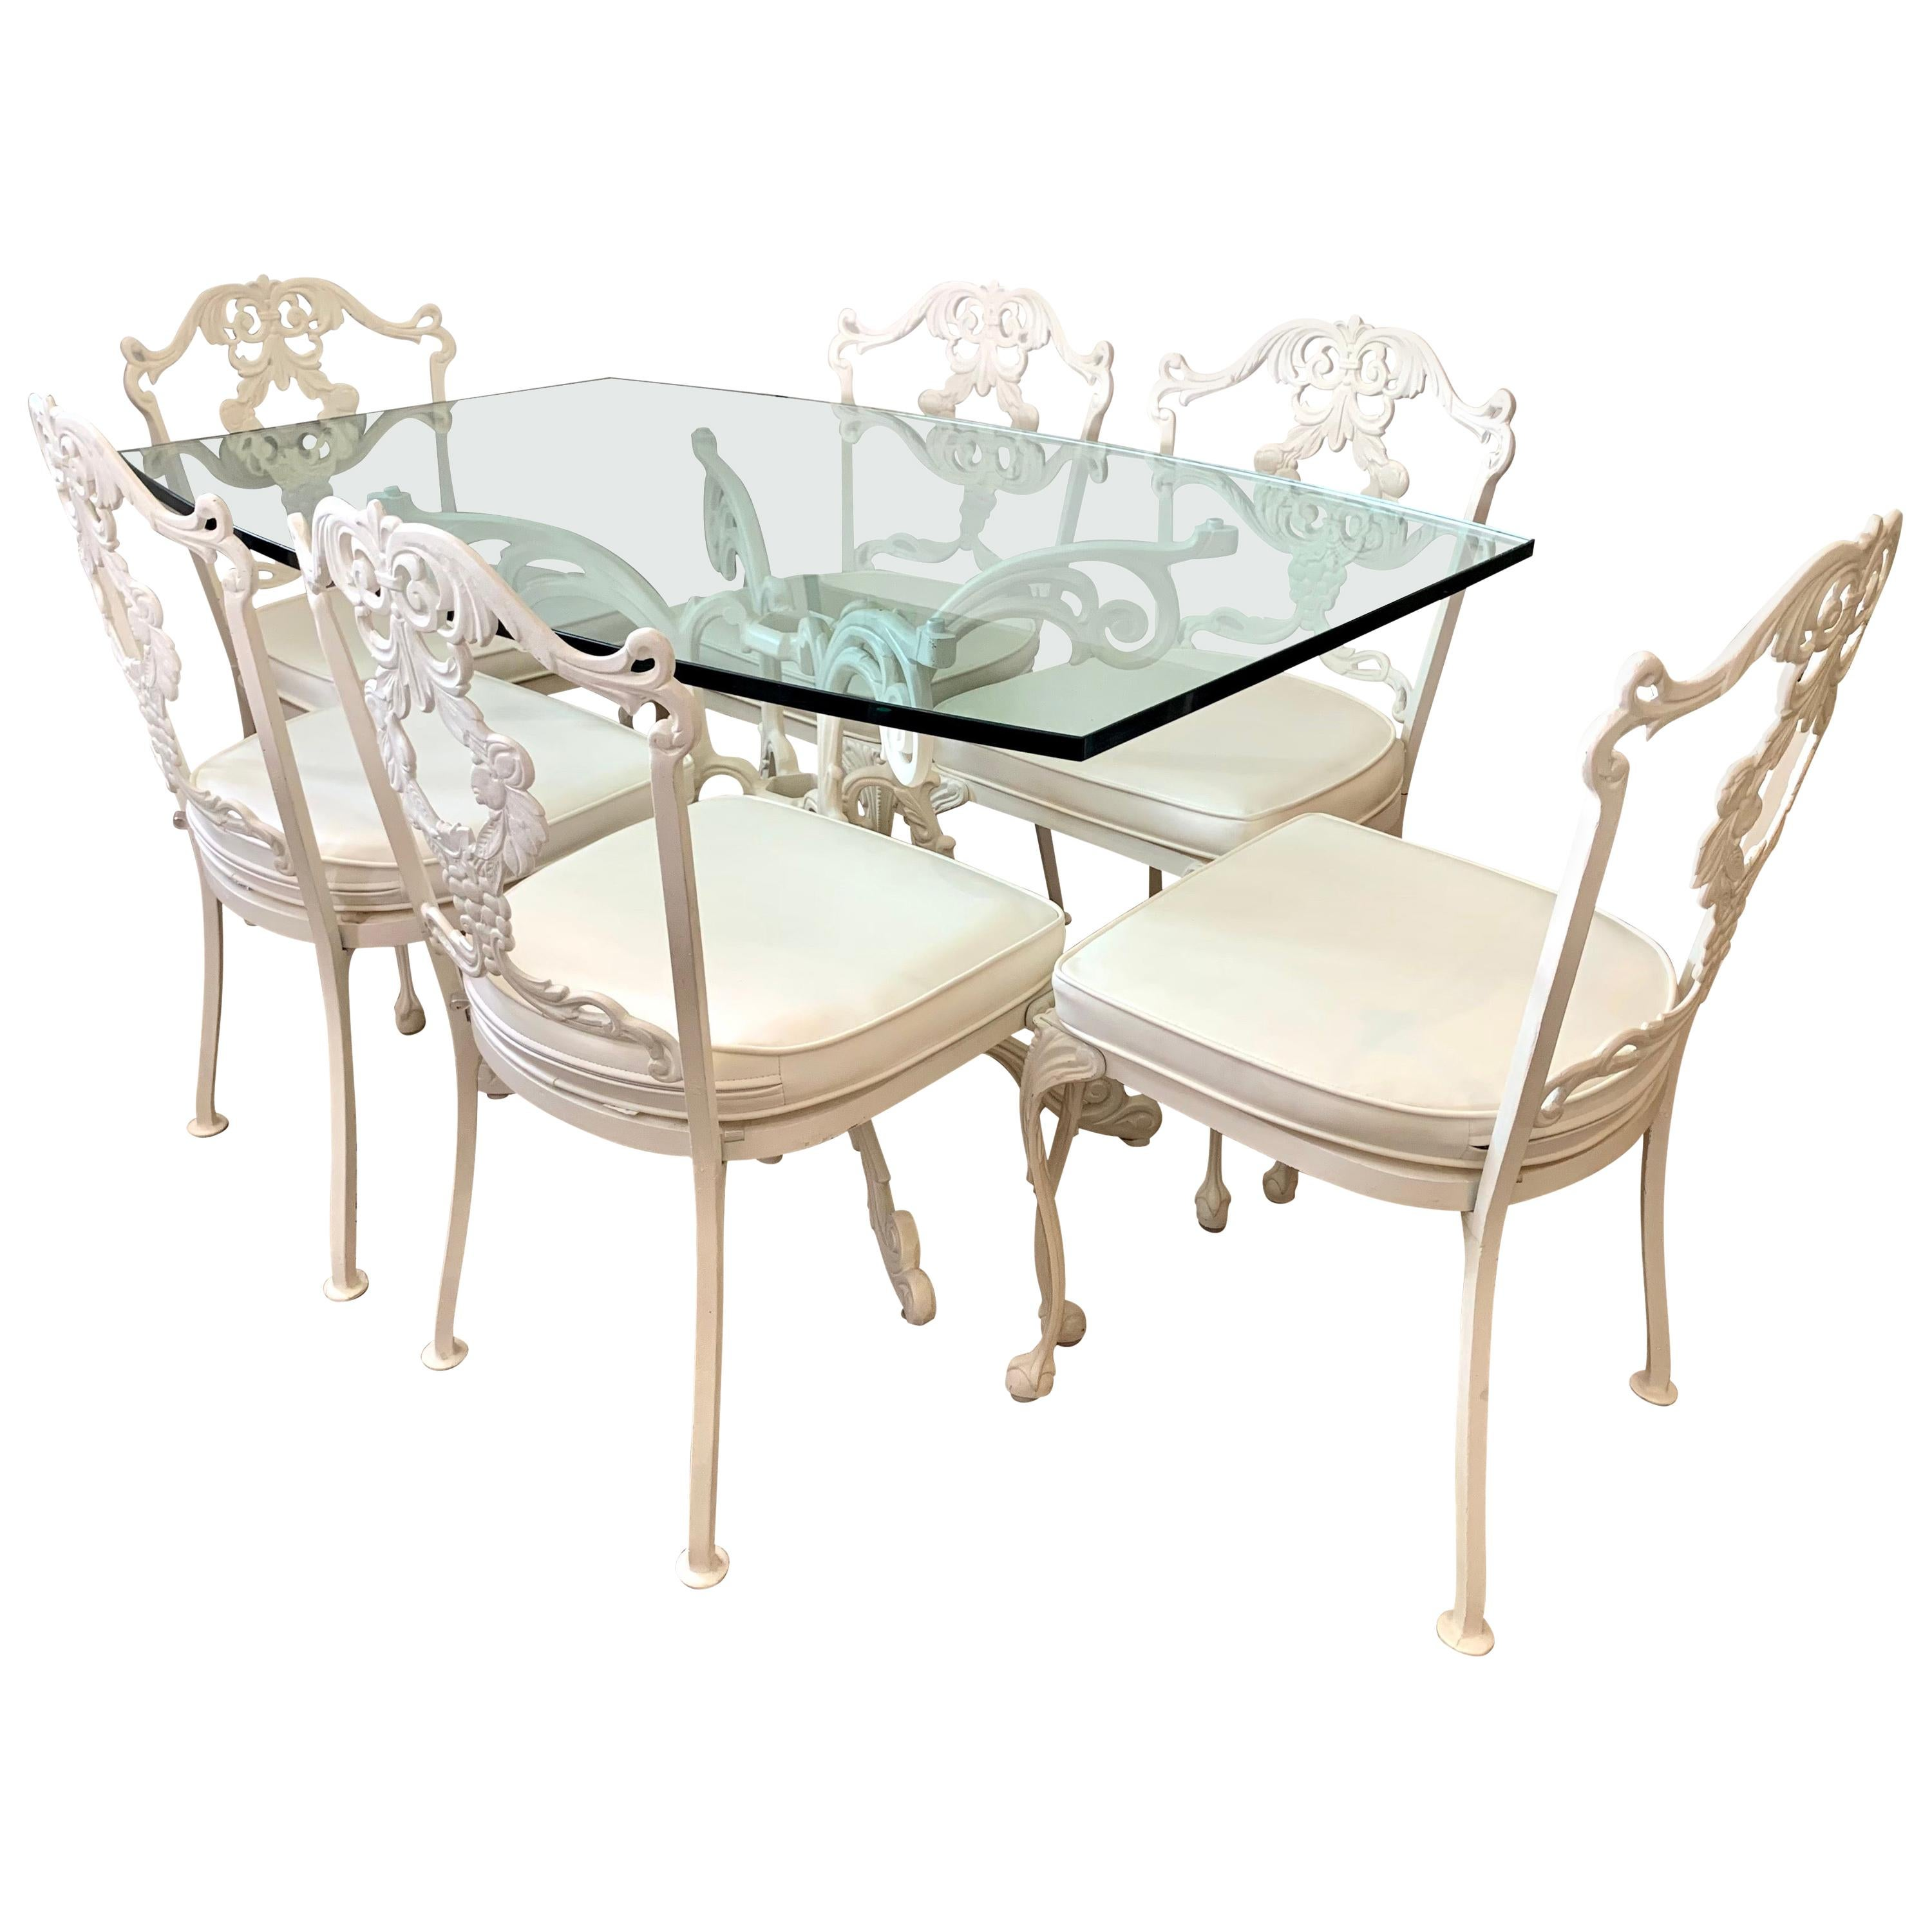 signed molla white cast aluminum 7 pc patio dining set table and 6 chairs